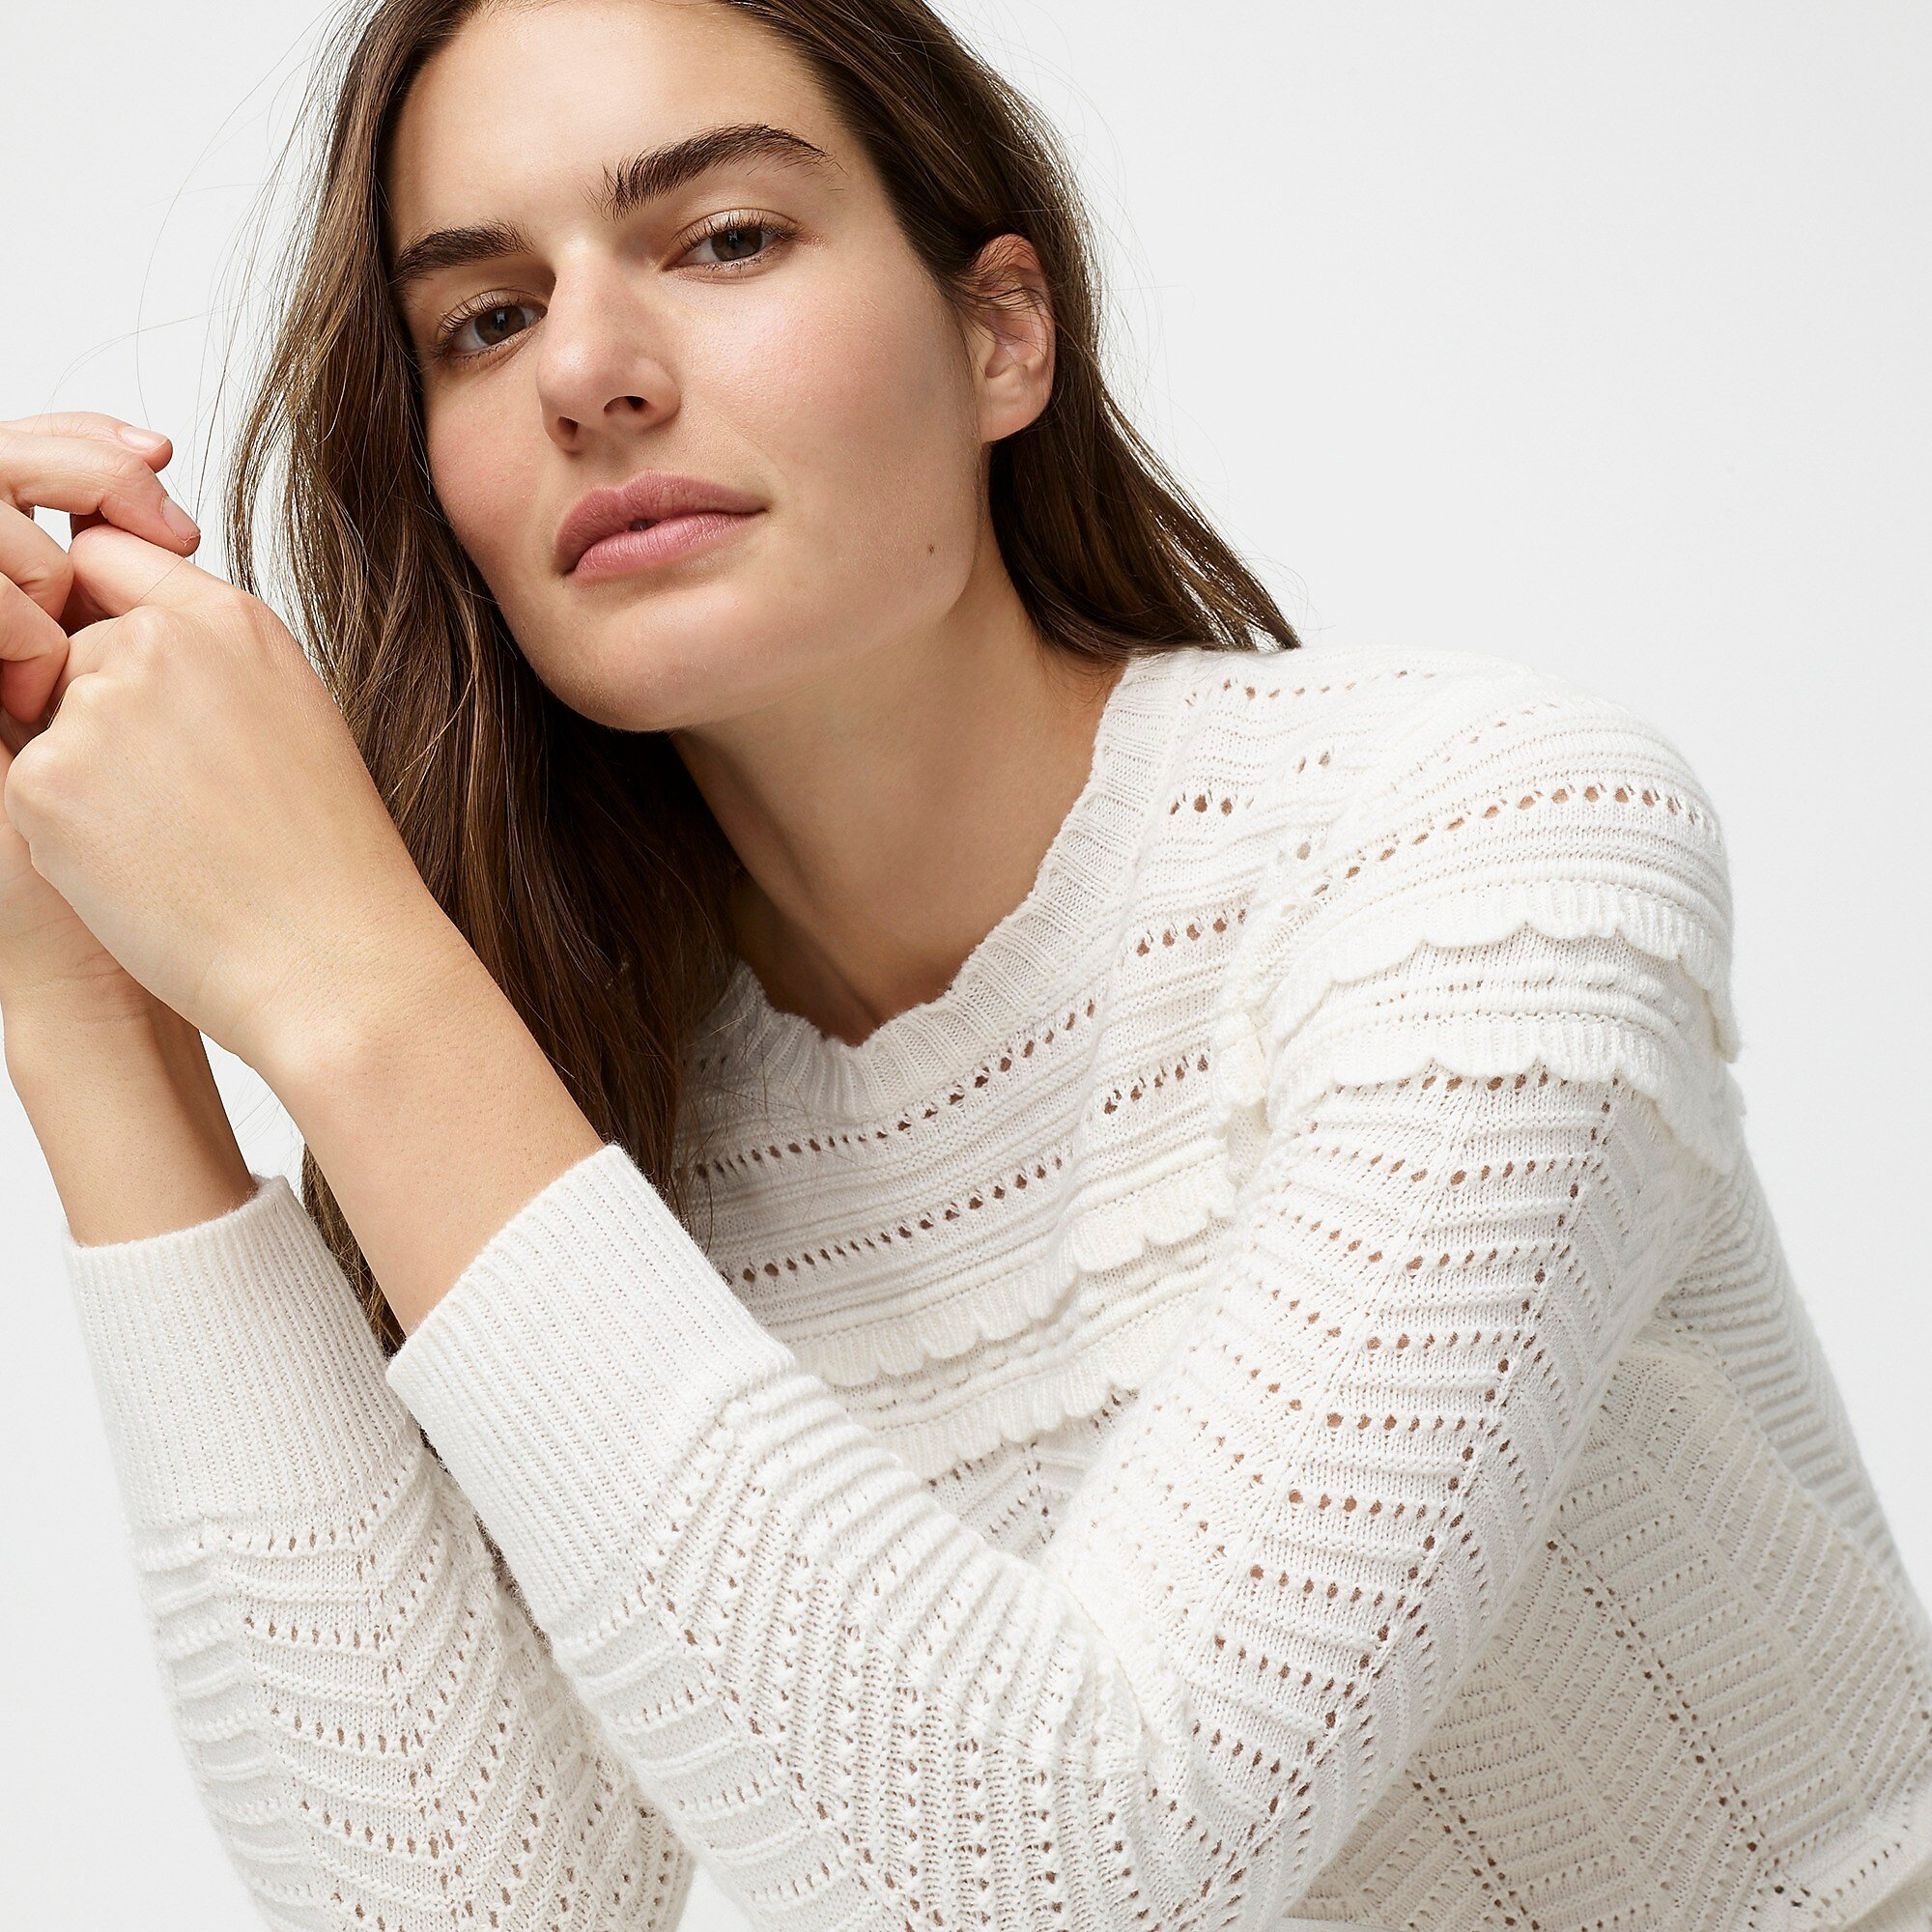 Phenomenal J Crew 2019 Pre Fall Favorites What I Ordered Crystalin Download Free Architecture Designs Itiscsunscenecom